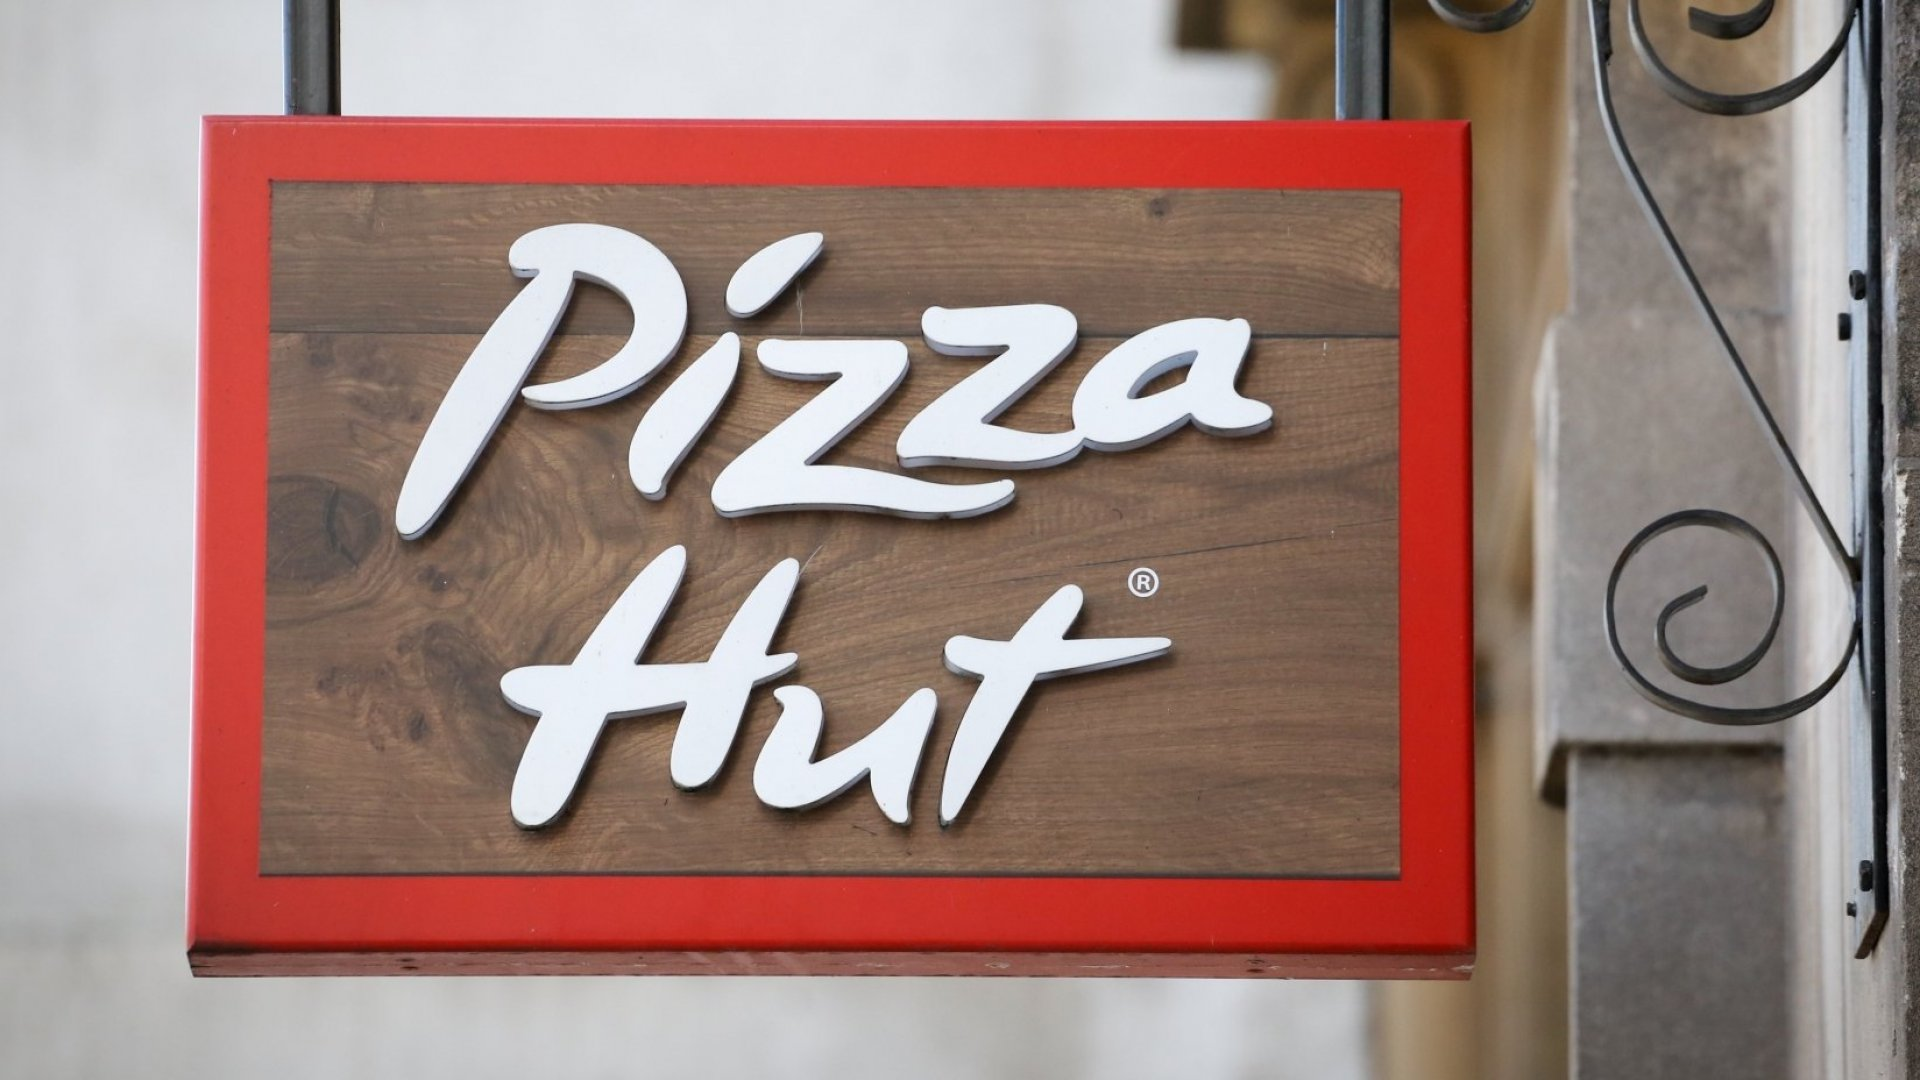 Pizza Hut Just Admitted to a Huge Failure. It's Something So Simple, But Not Everyone Can Do It Well (and So Many Companies Do It Badly)